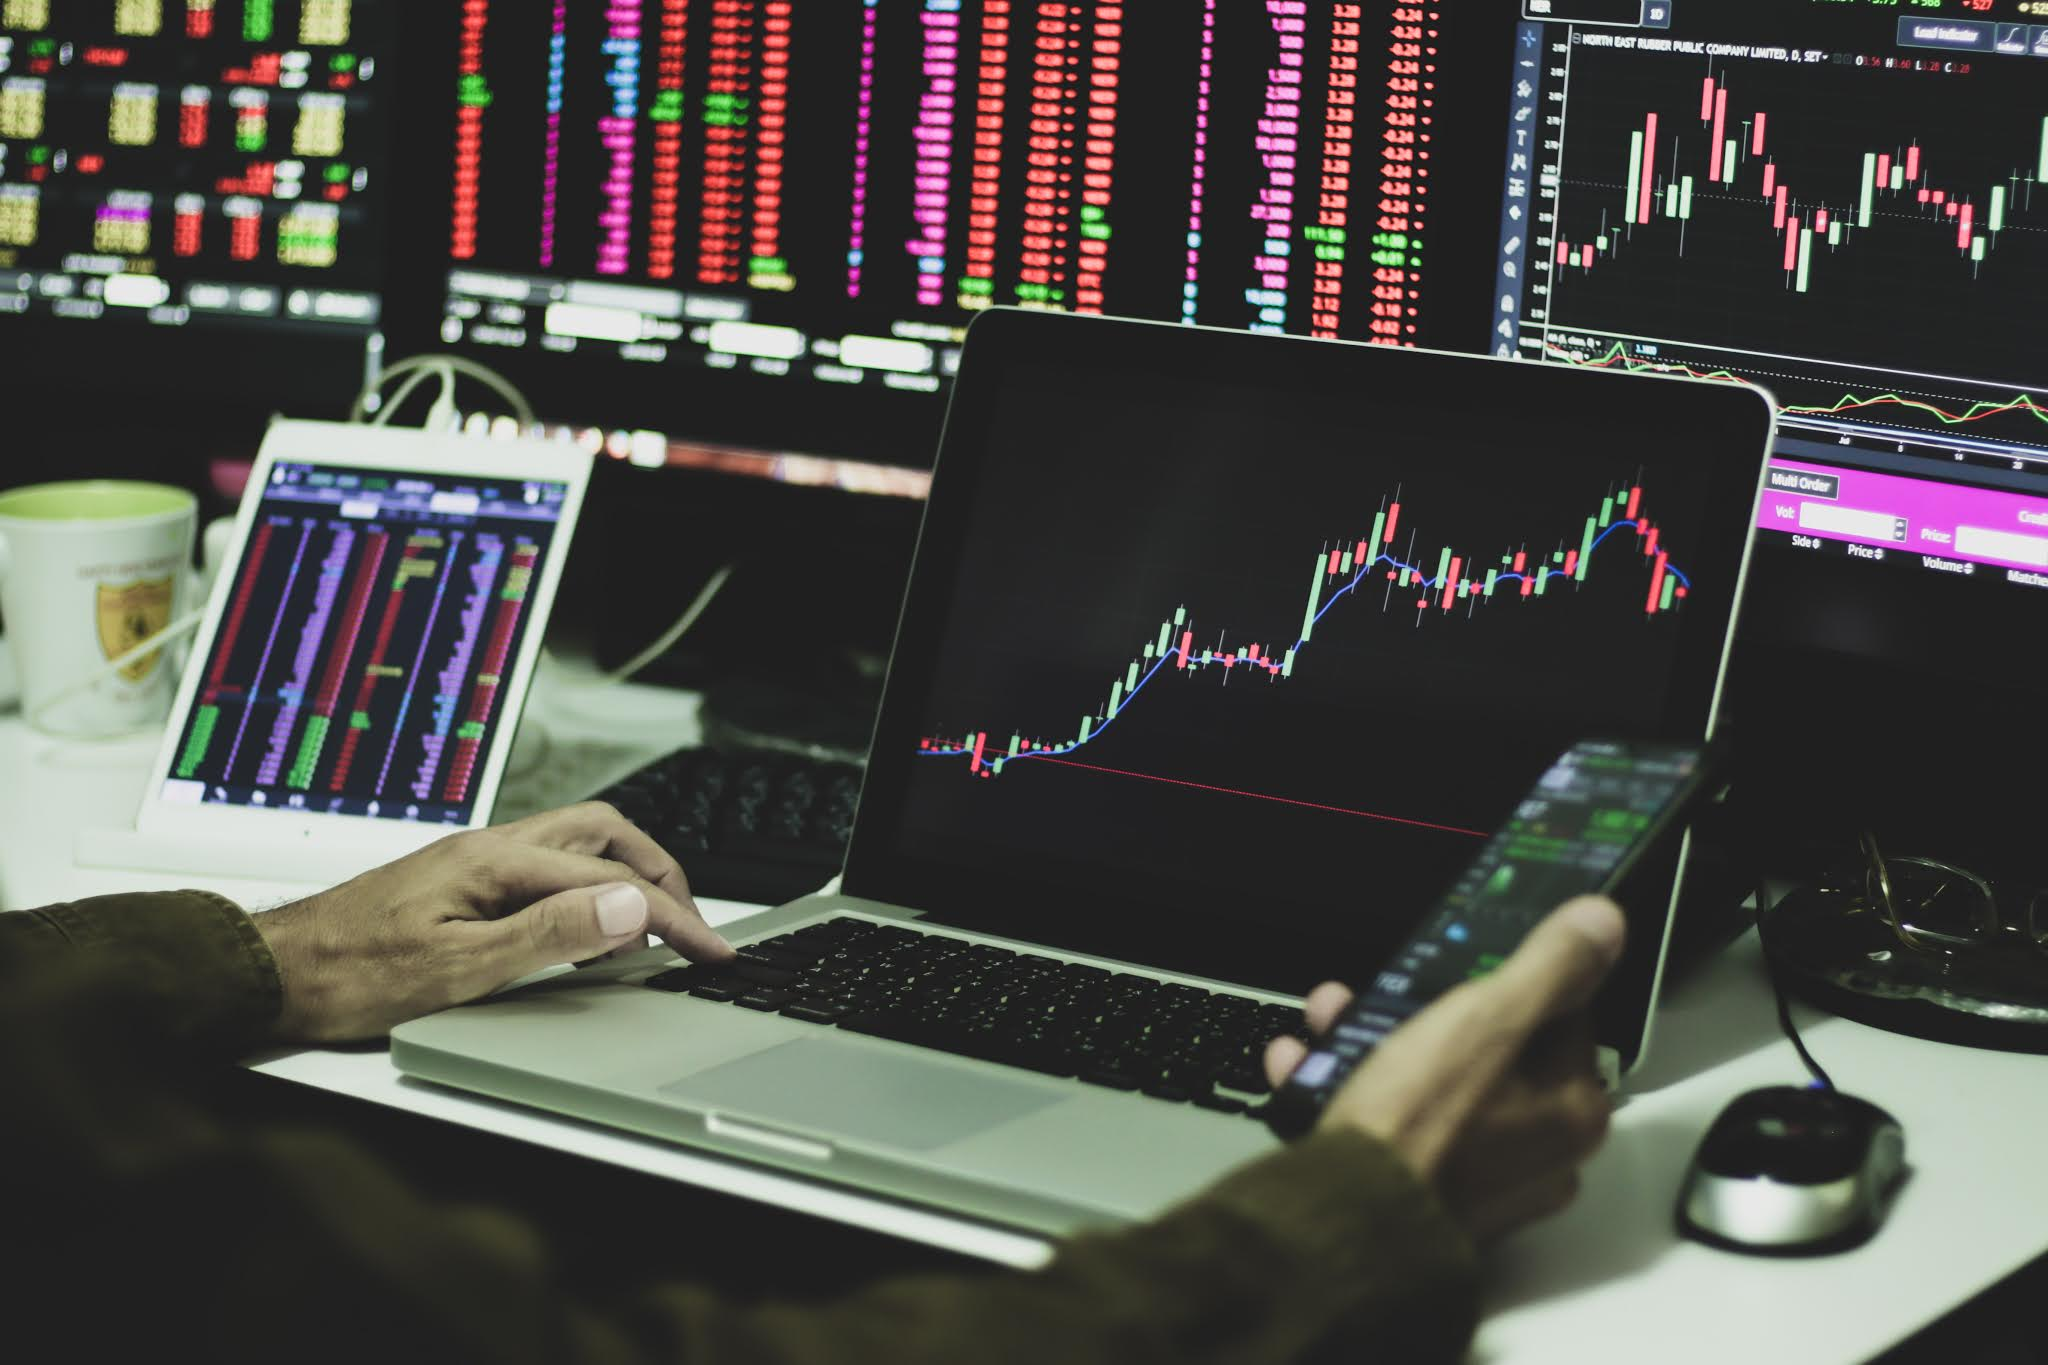 UNDERSTAND WHAT SHARES OR STOCKS ARE